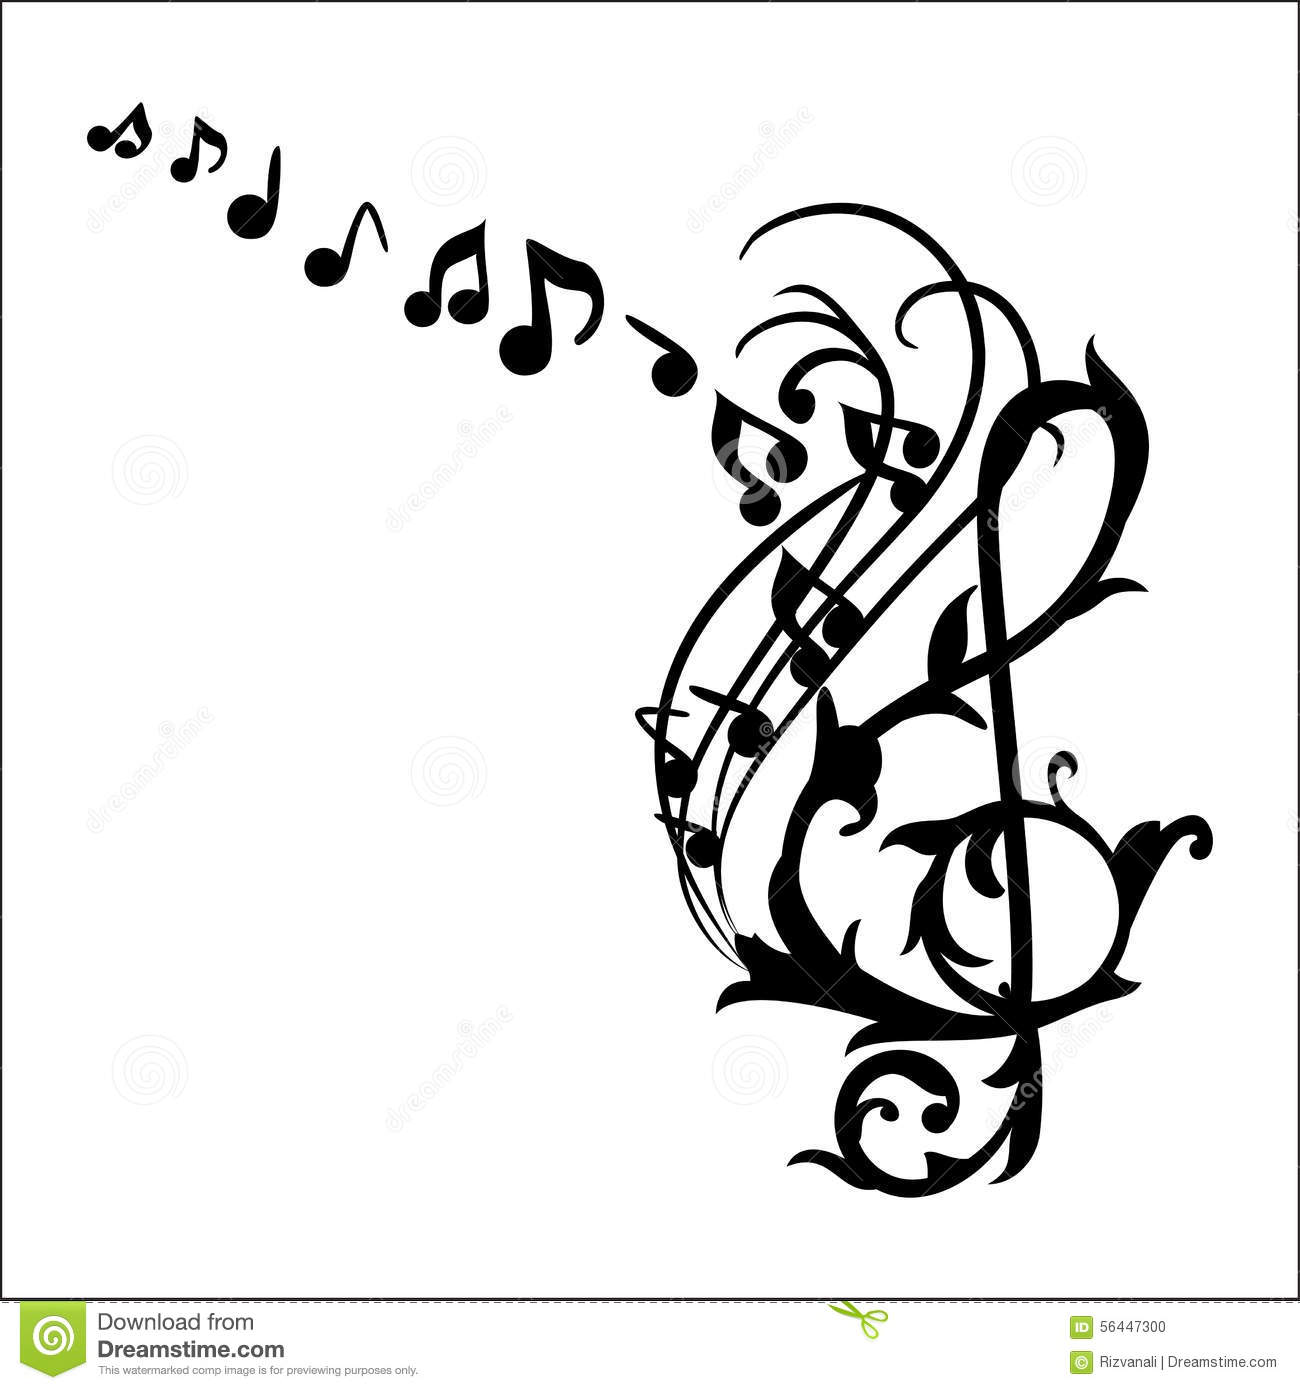 music notes wall decal vector illustration stock illustration decal design illustration music notes wall